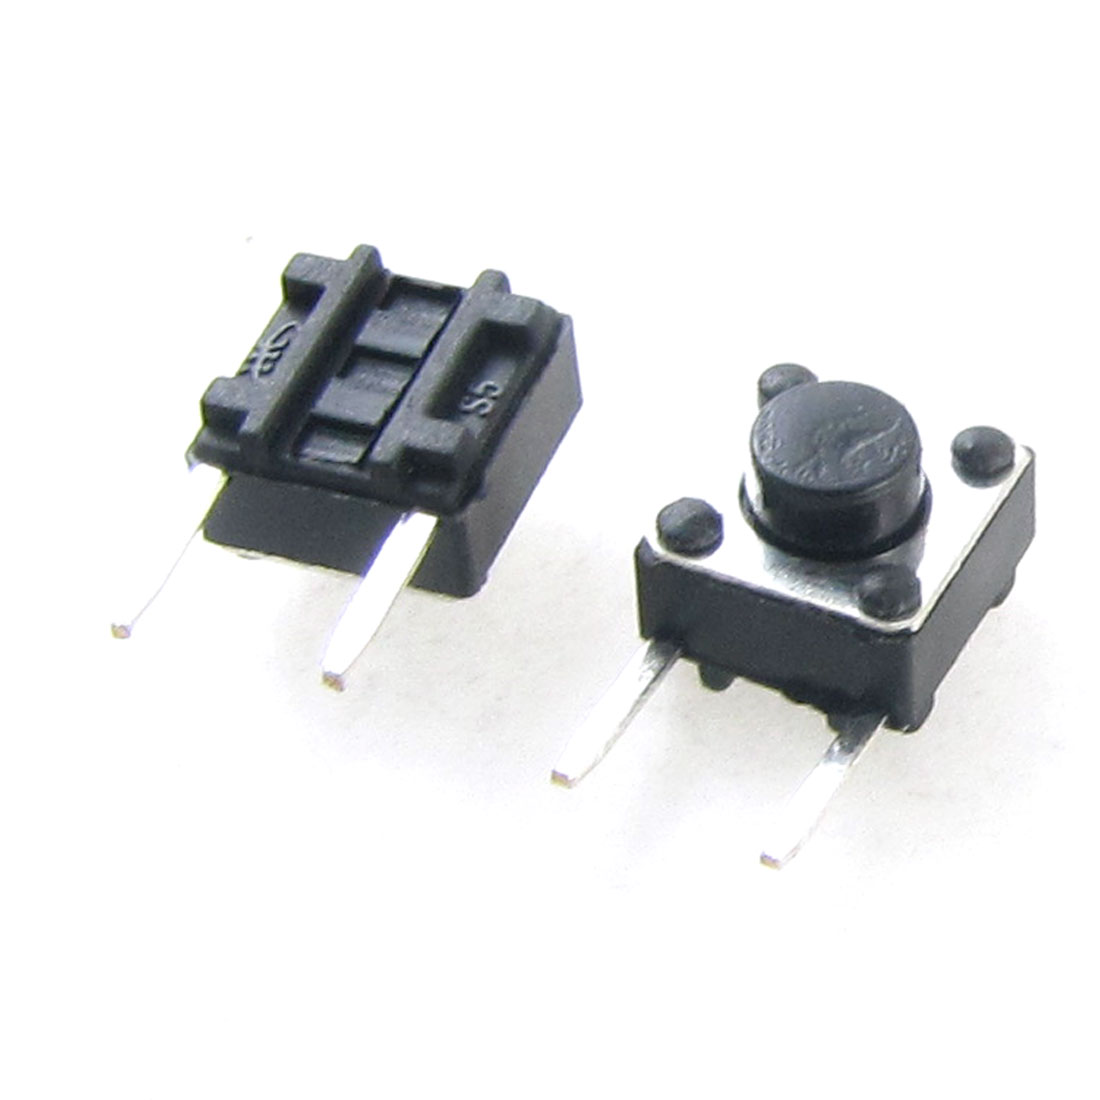 50 Pcs 6 x 6mm x 5mm Momentary Push Button Tactile Switch DIP Through Hole